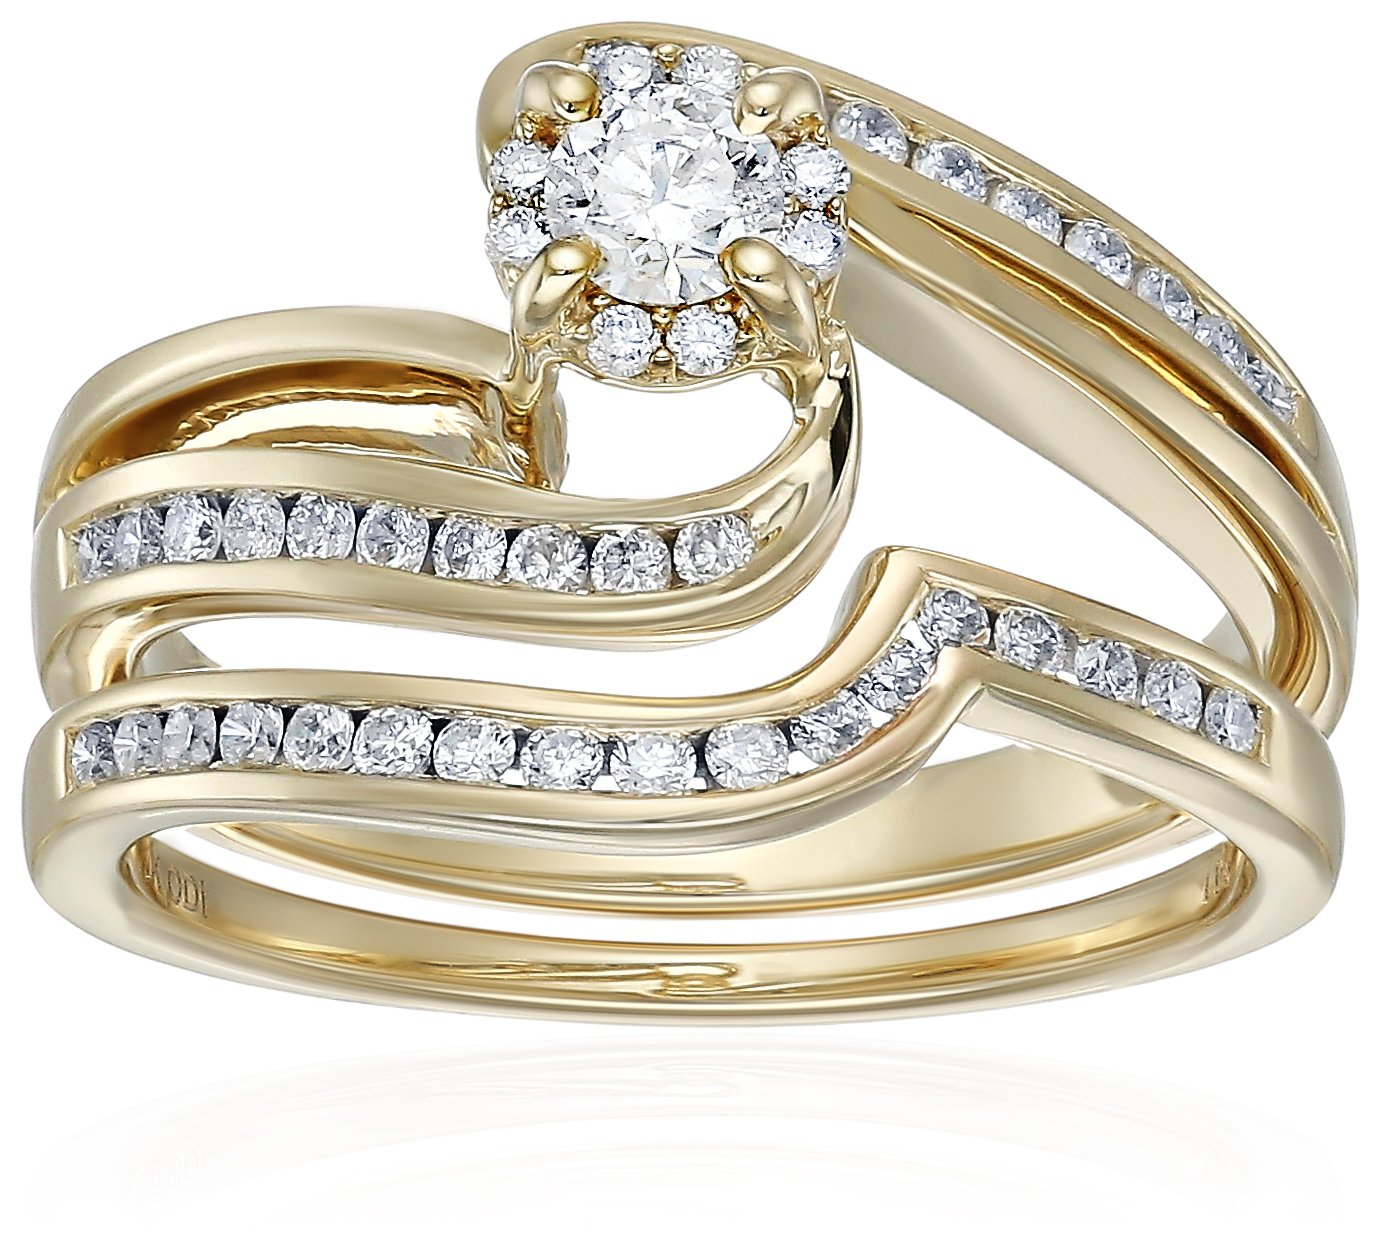 10k Yellow Gold Diamond Swirl Bridal Wedding Ring Set (5/8cttw, I Color, I2 I3 Clarity), Size 8 by Amazon Collection (Image #1)